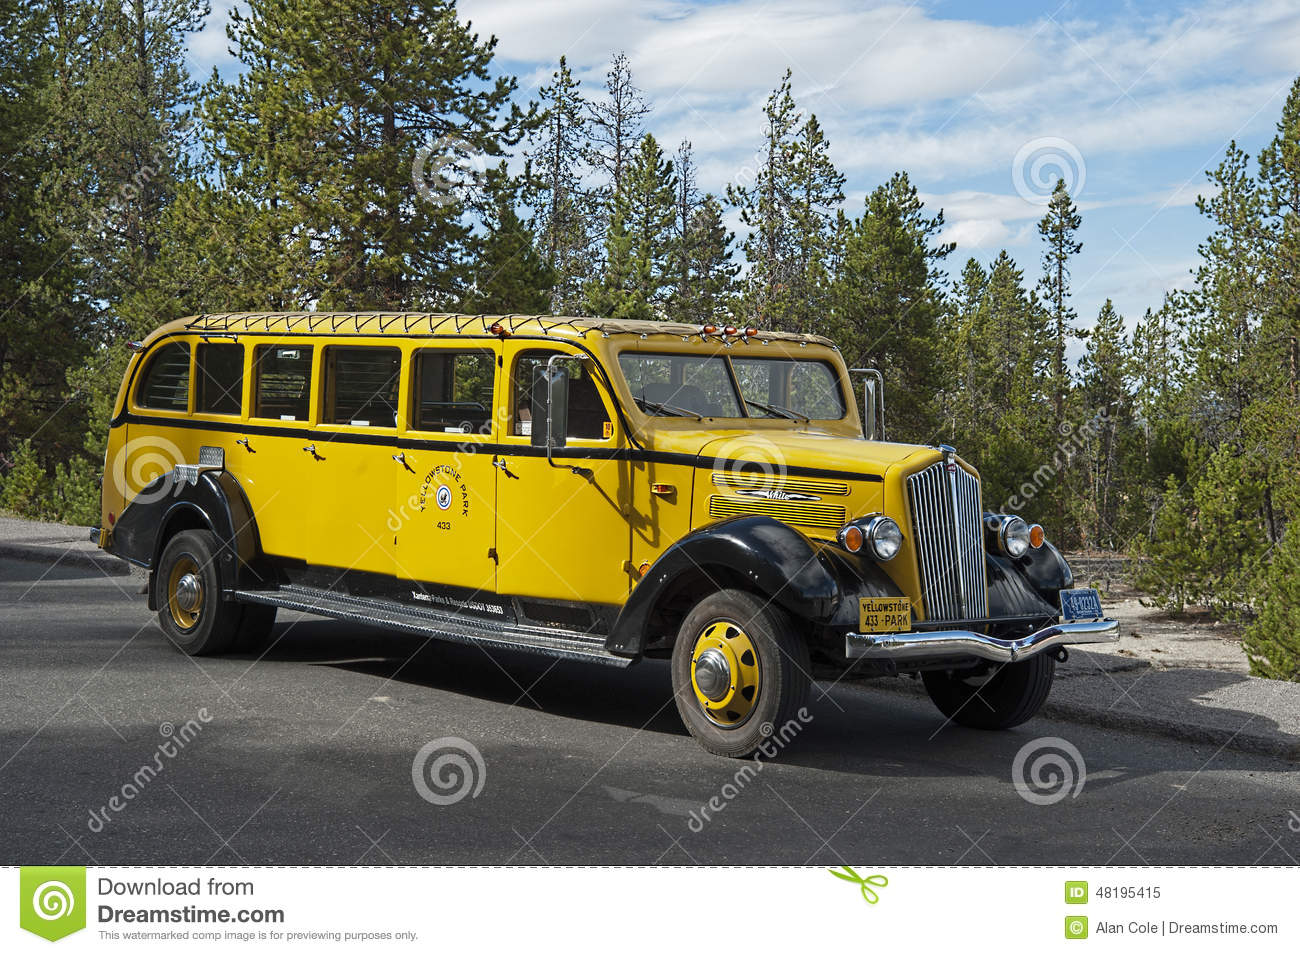 Bus Tours In Yellowstone Park